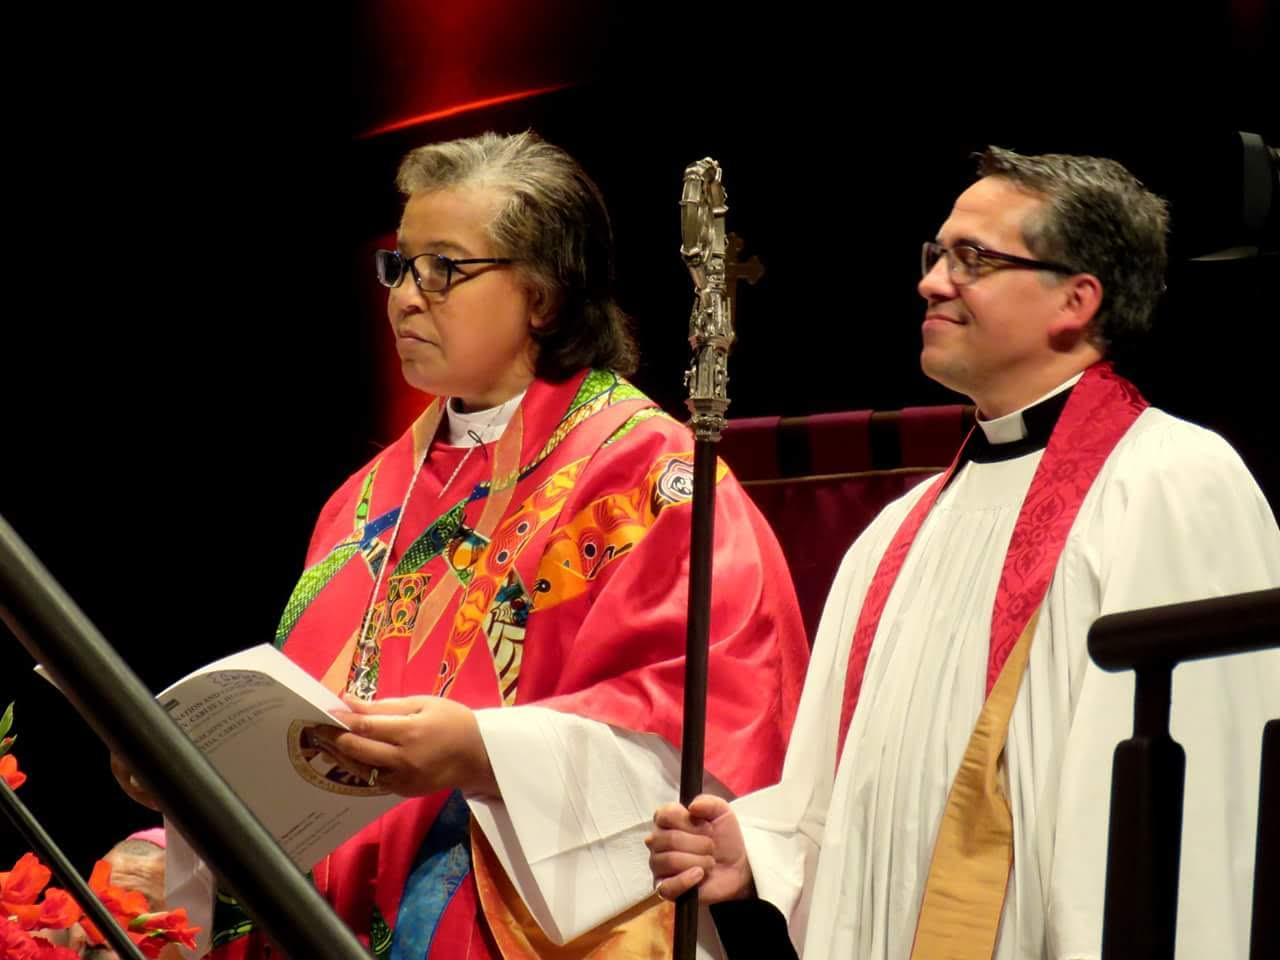 Bishop Carlye and Father Jerry